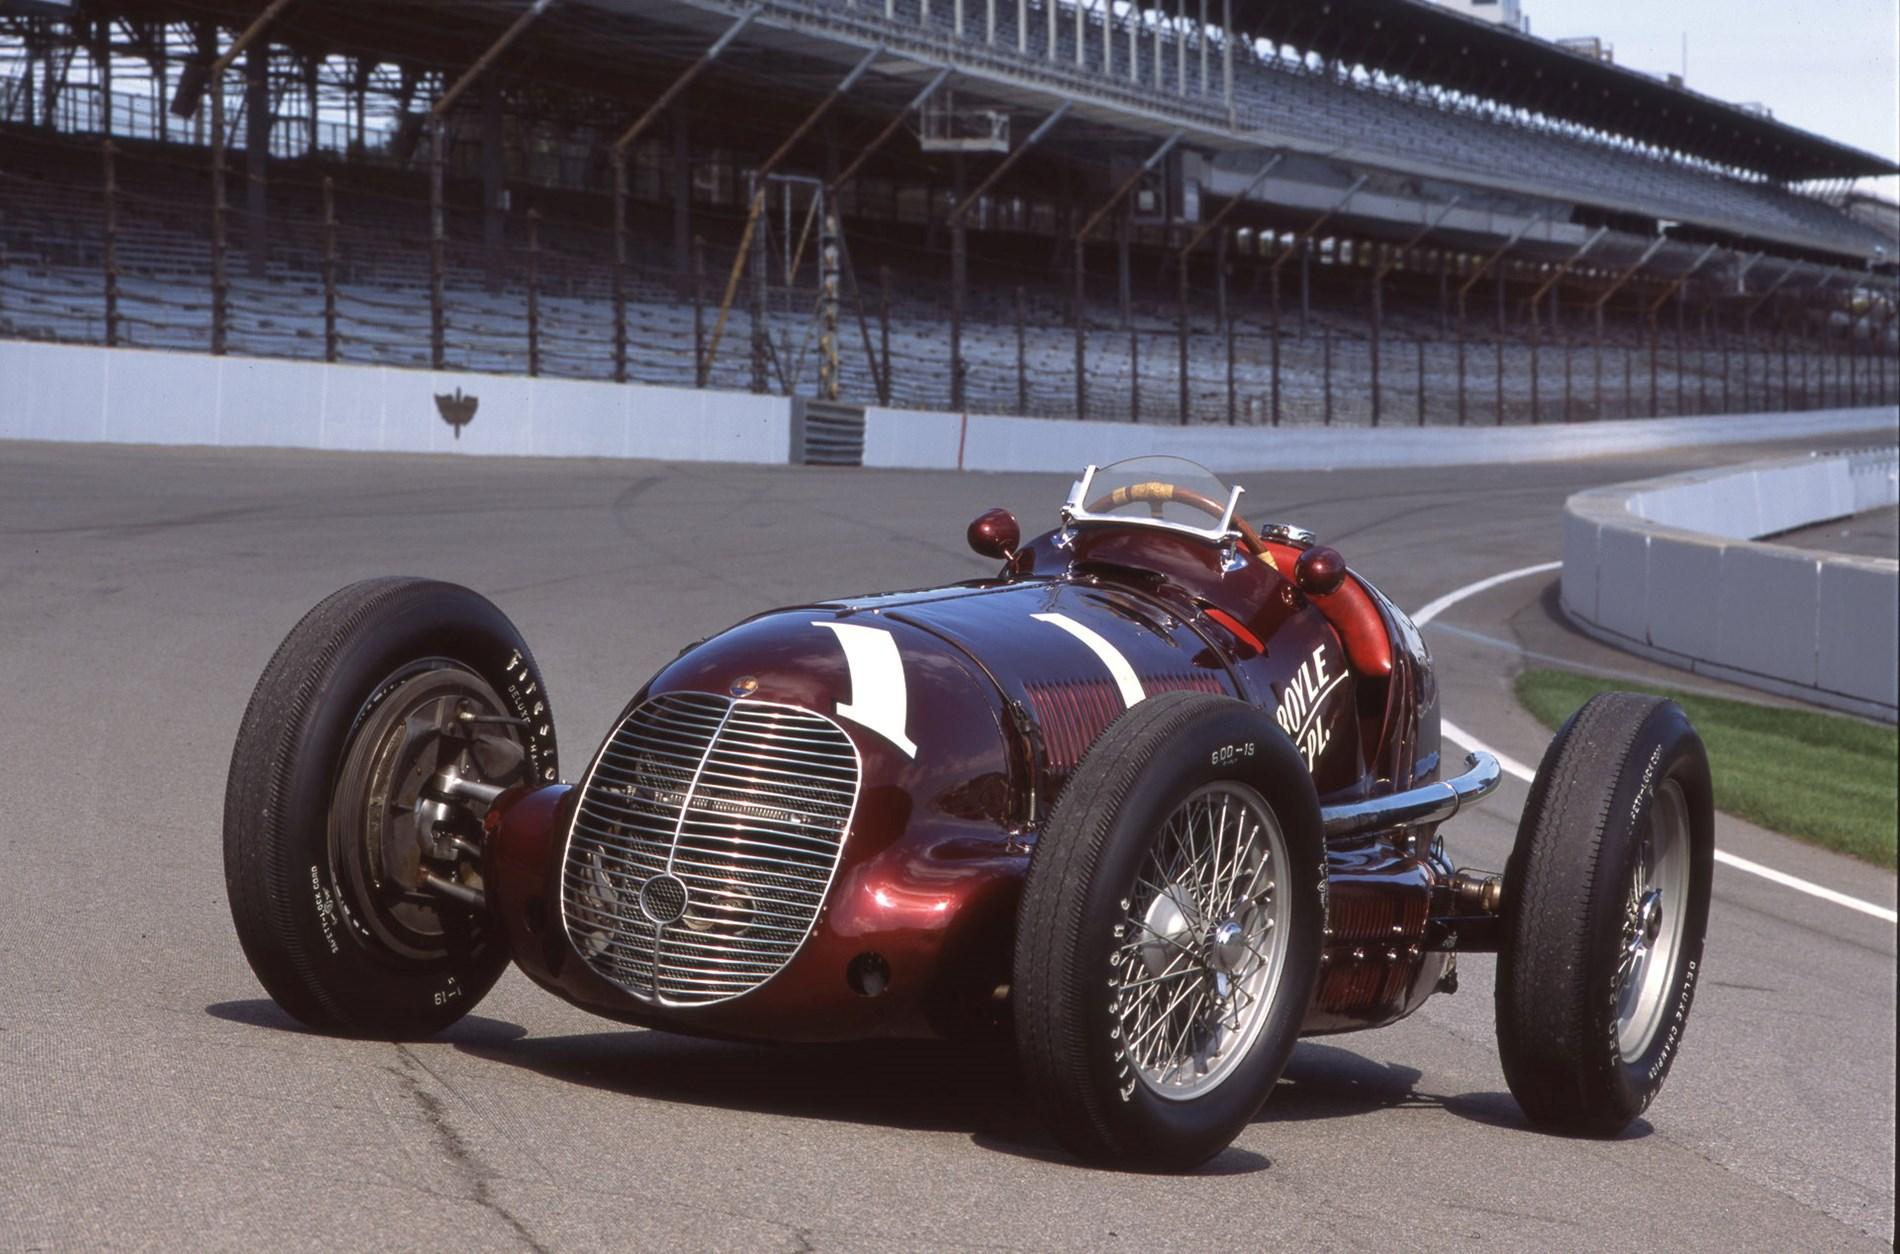 Maserati commemorates the American victories of the 8CTF at the Indianapolis 500